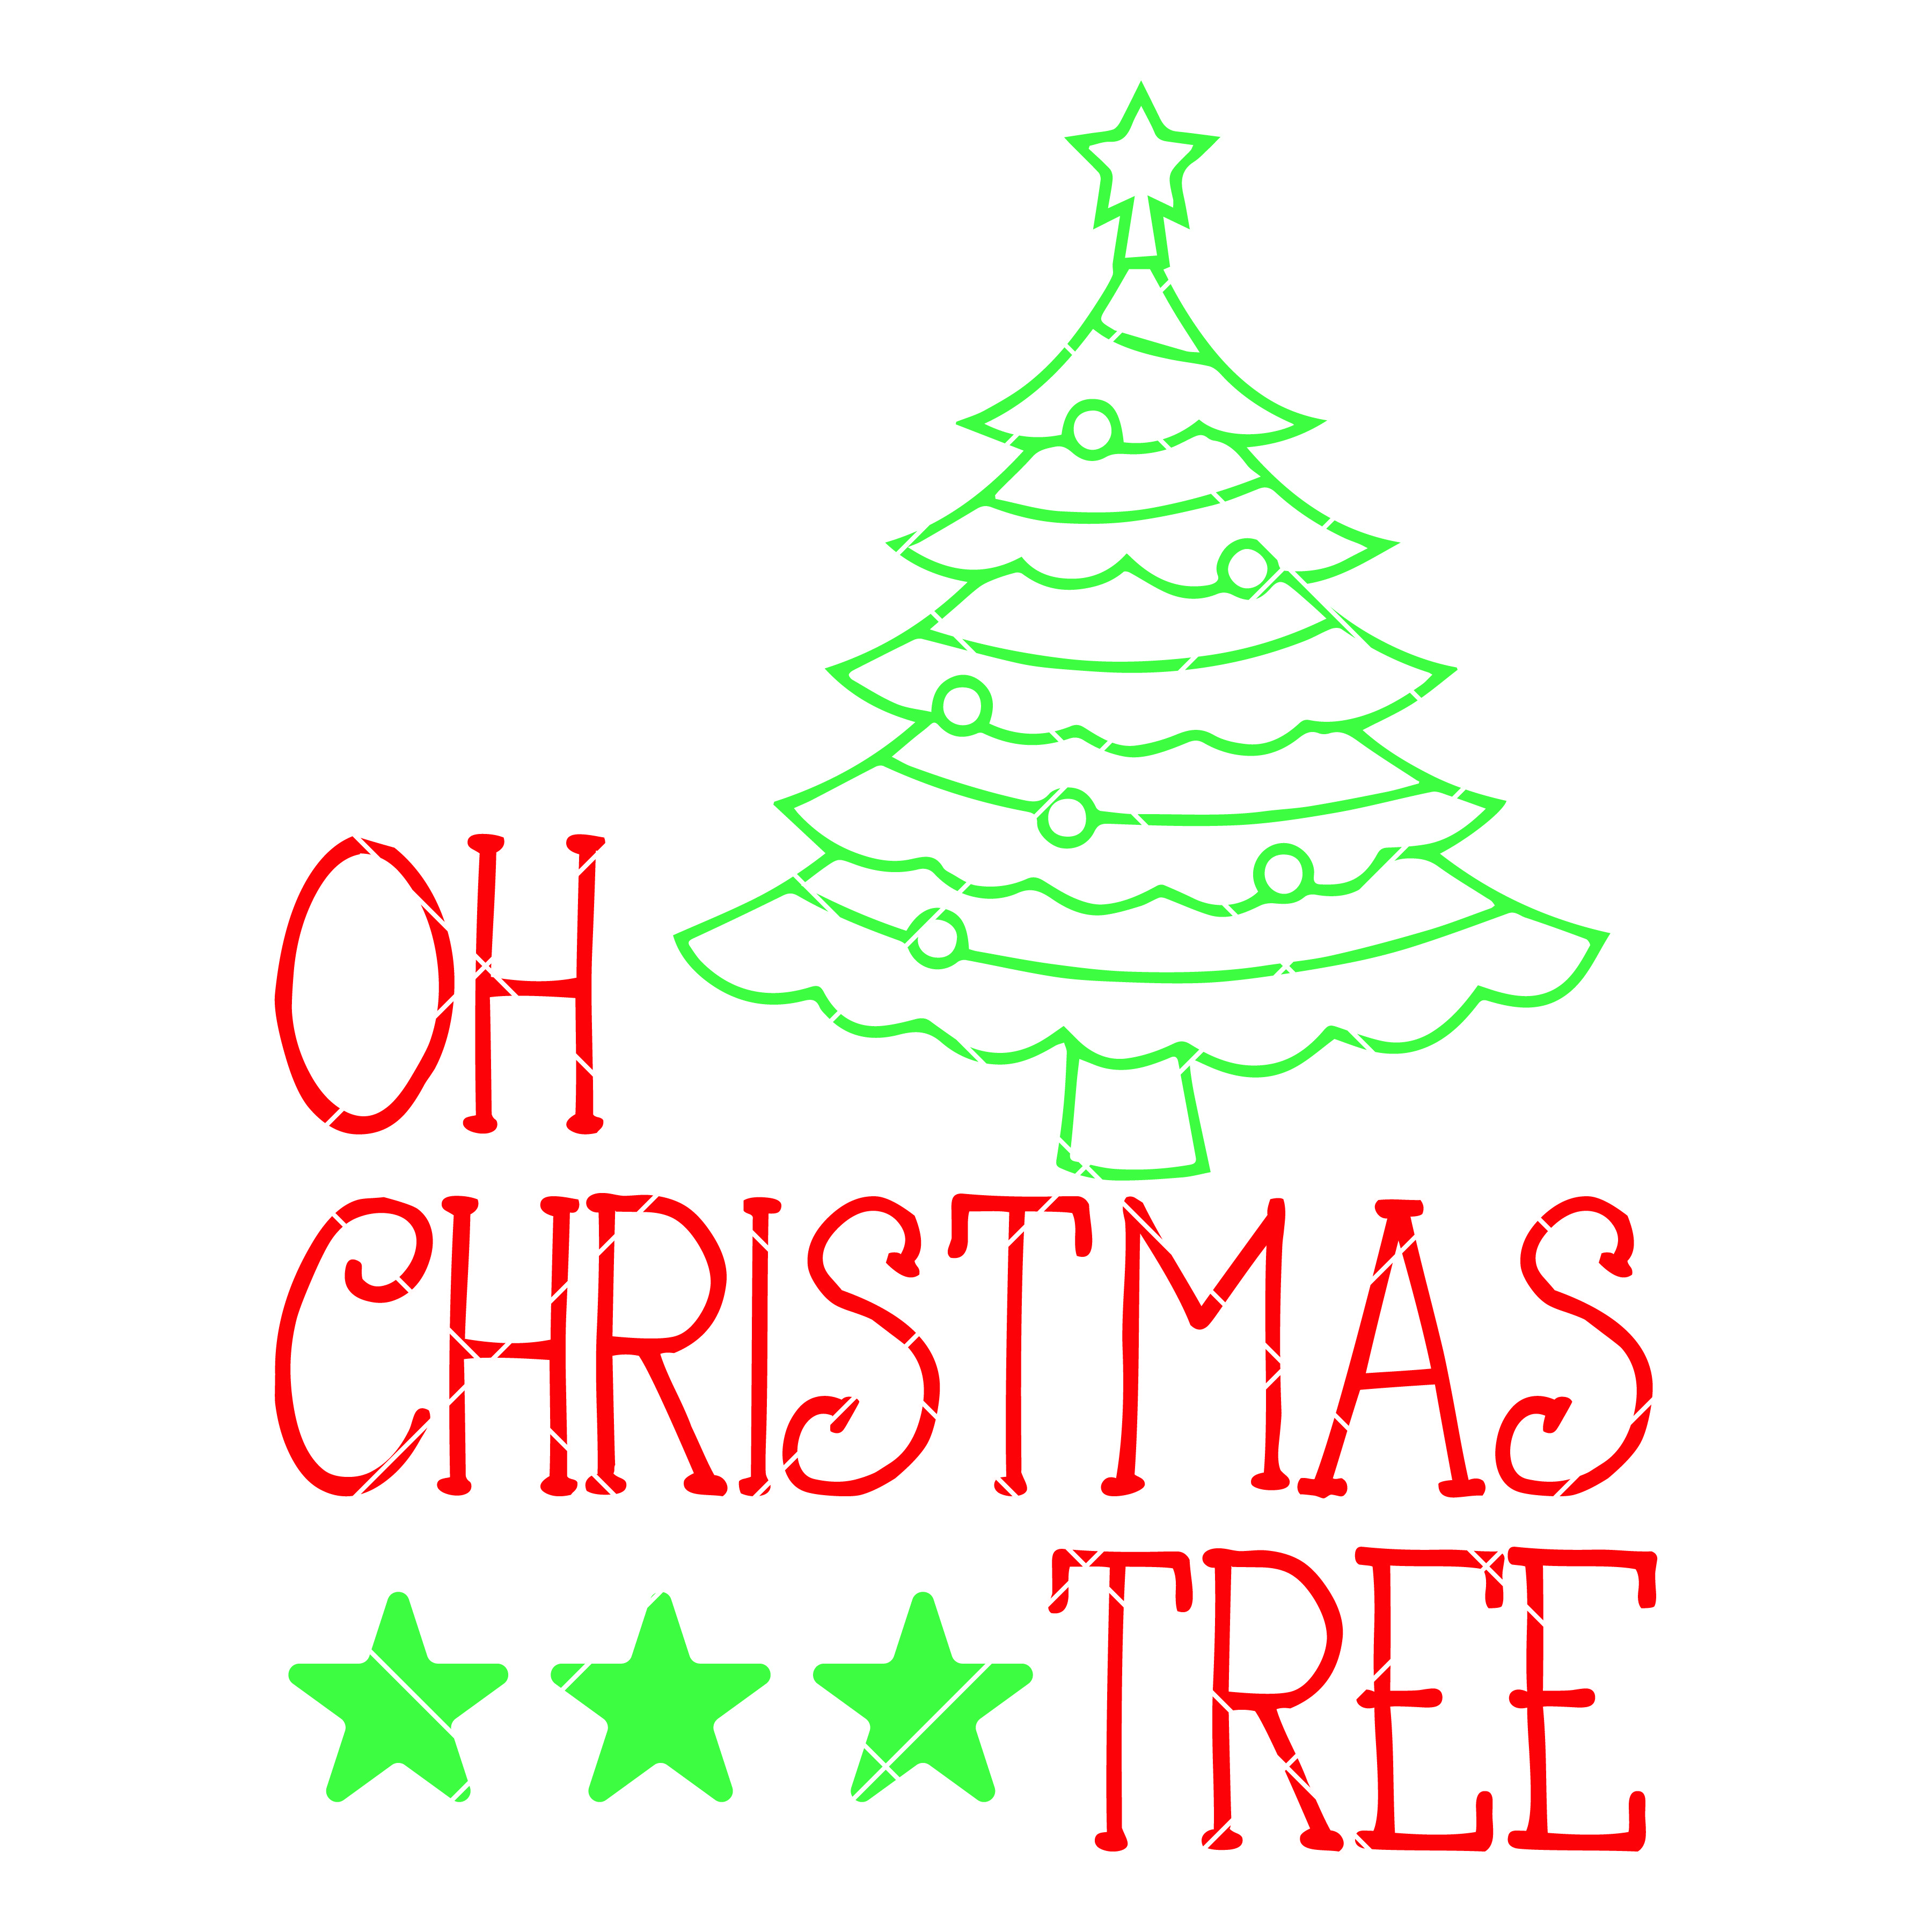 Christmas Tree Svg Free Download.Oh Christmas Tree Svg Free Svg Files Christmas Svg